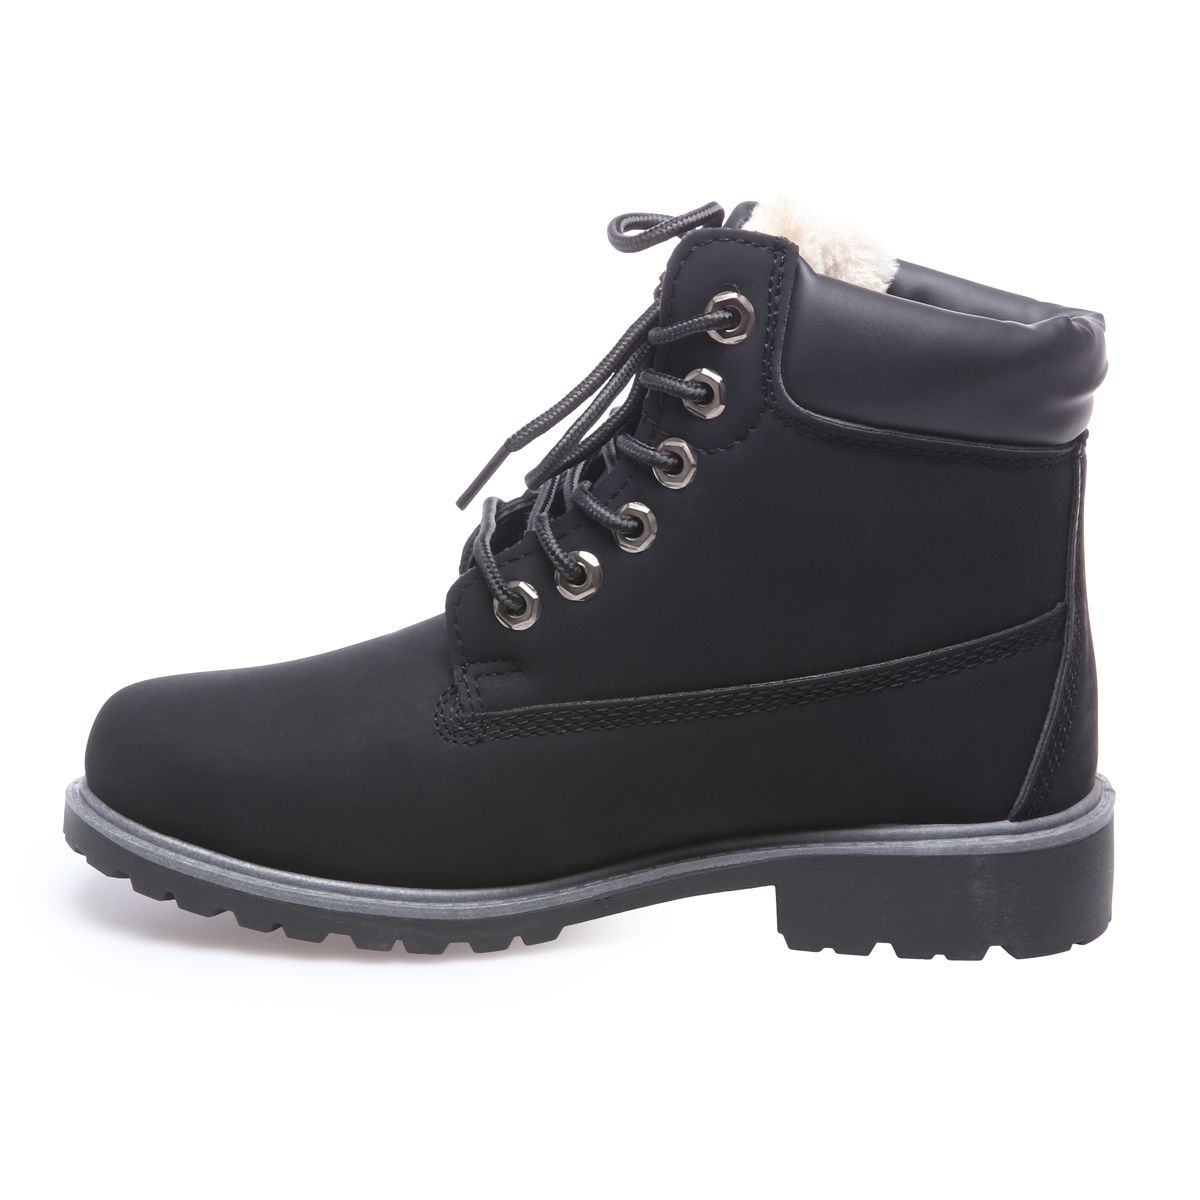 boots femme style rangers